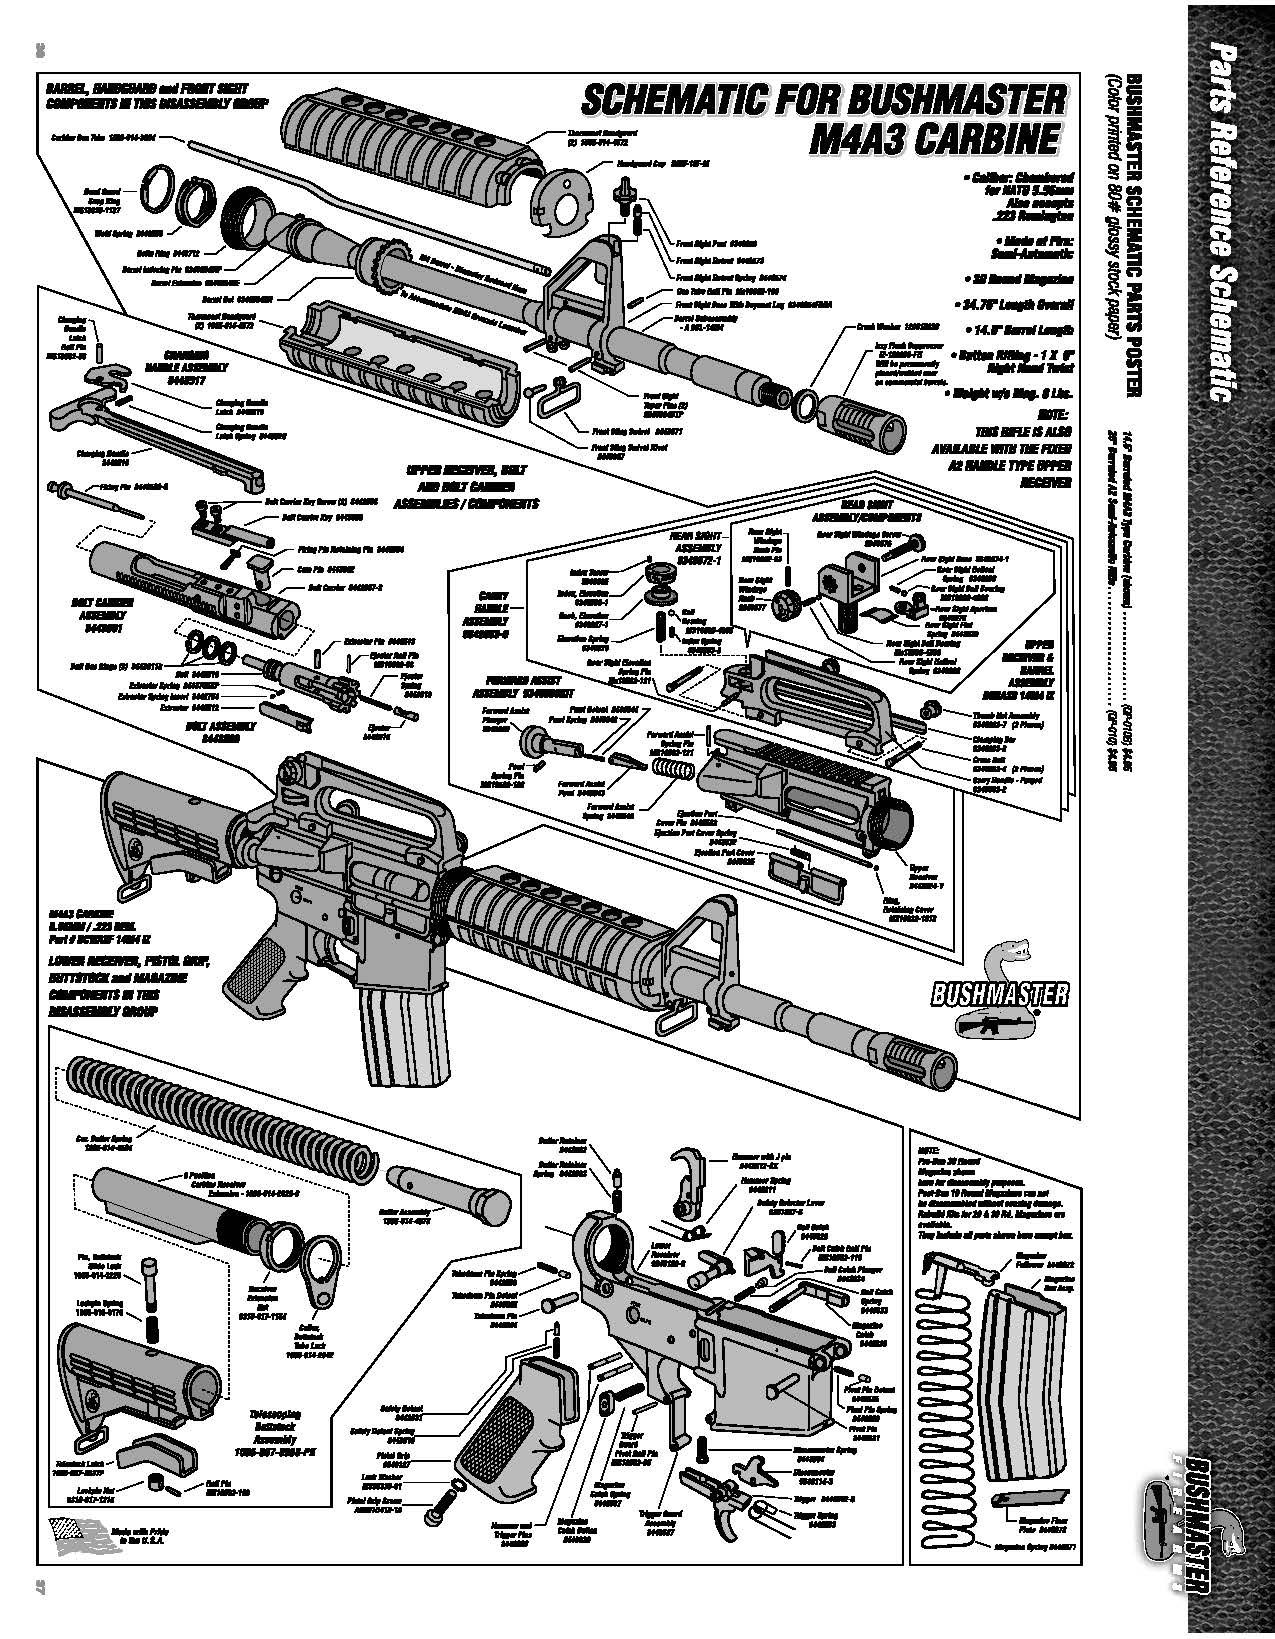 small resolution of ar 15 schematic parts poster wiring diagram perfomancear 15 parts schematic bushmaster pg